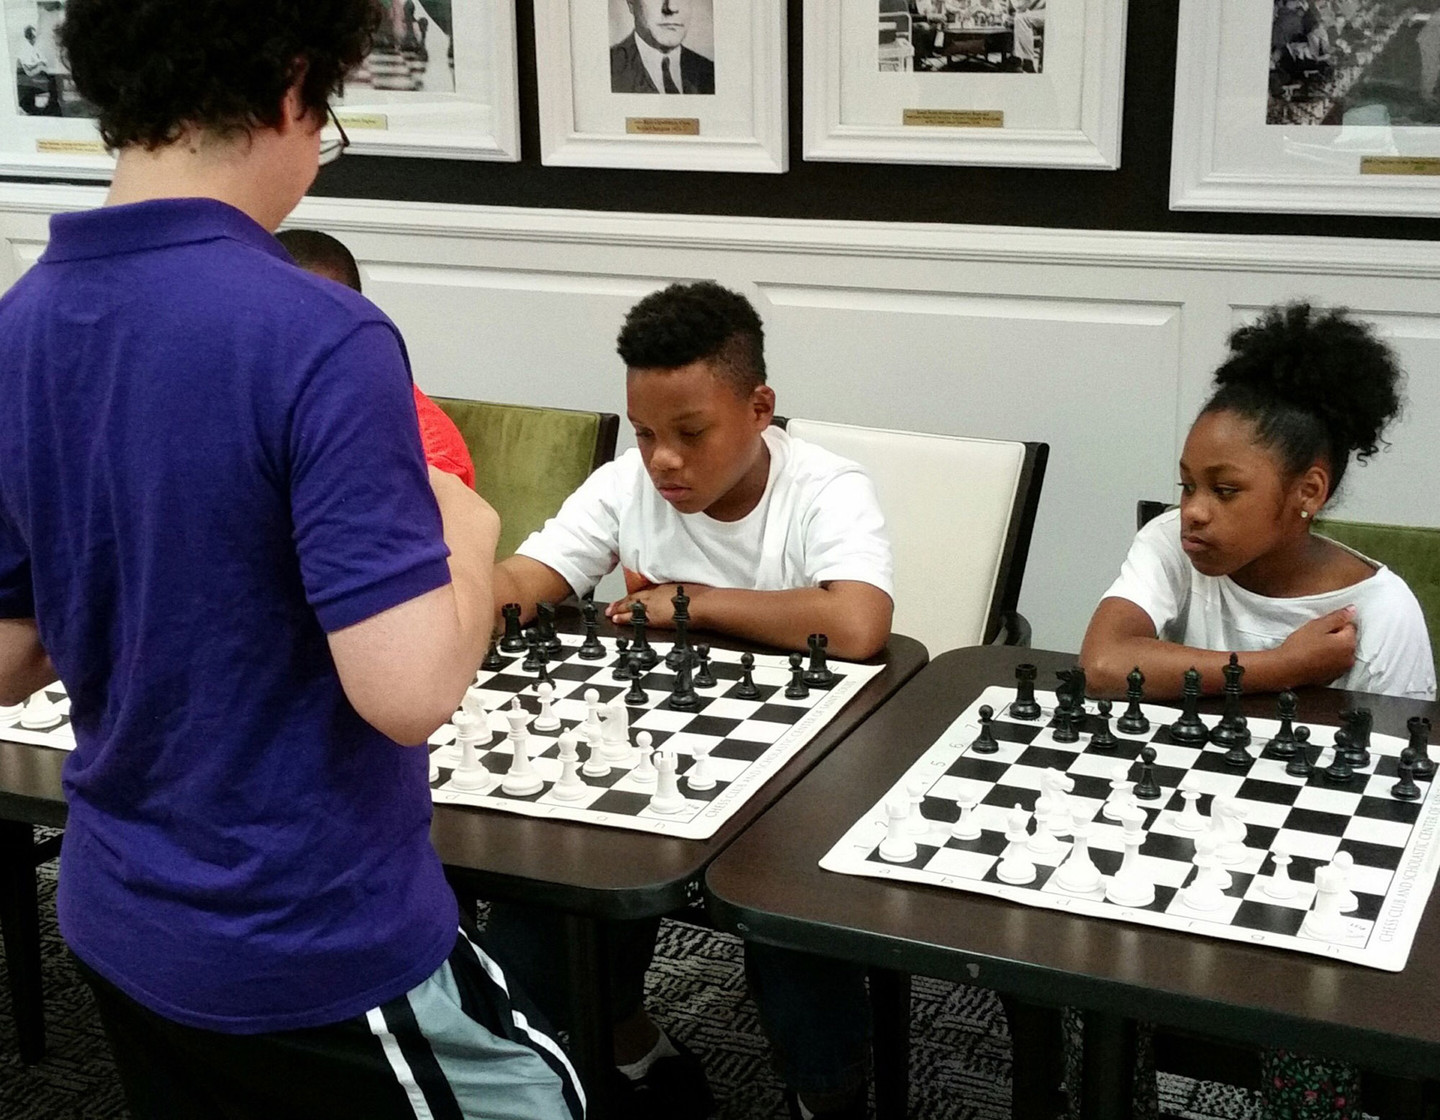 Does Chess Make Kids Smarter, or Do Smart Kids Play Chess?